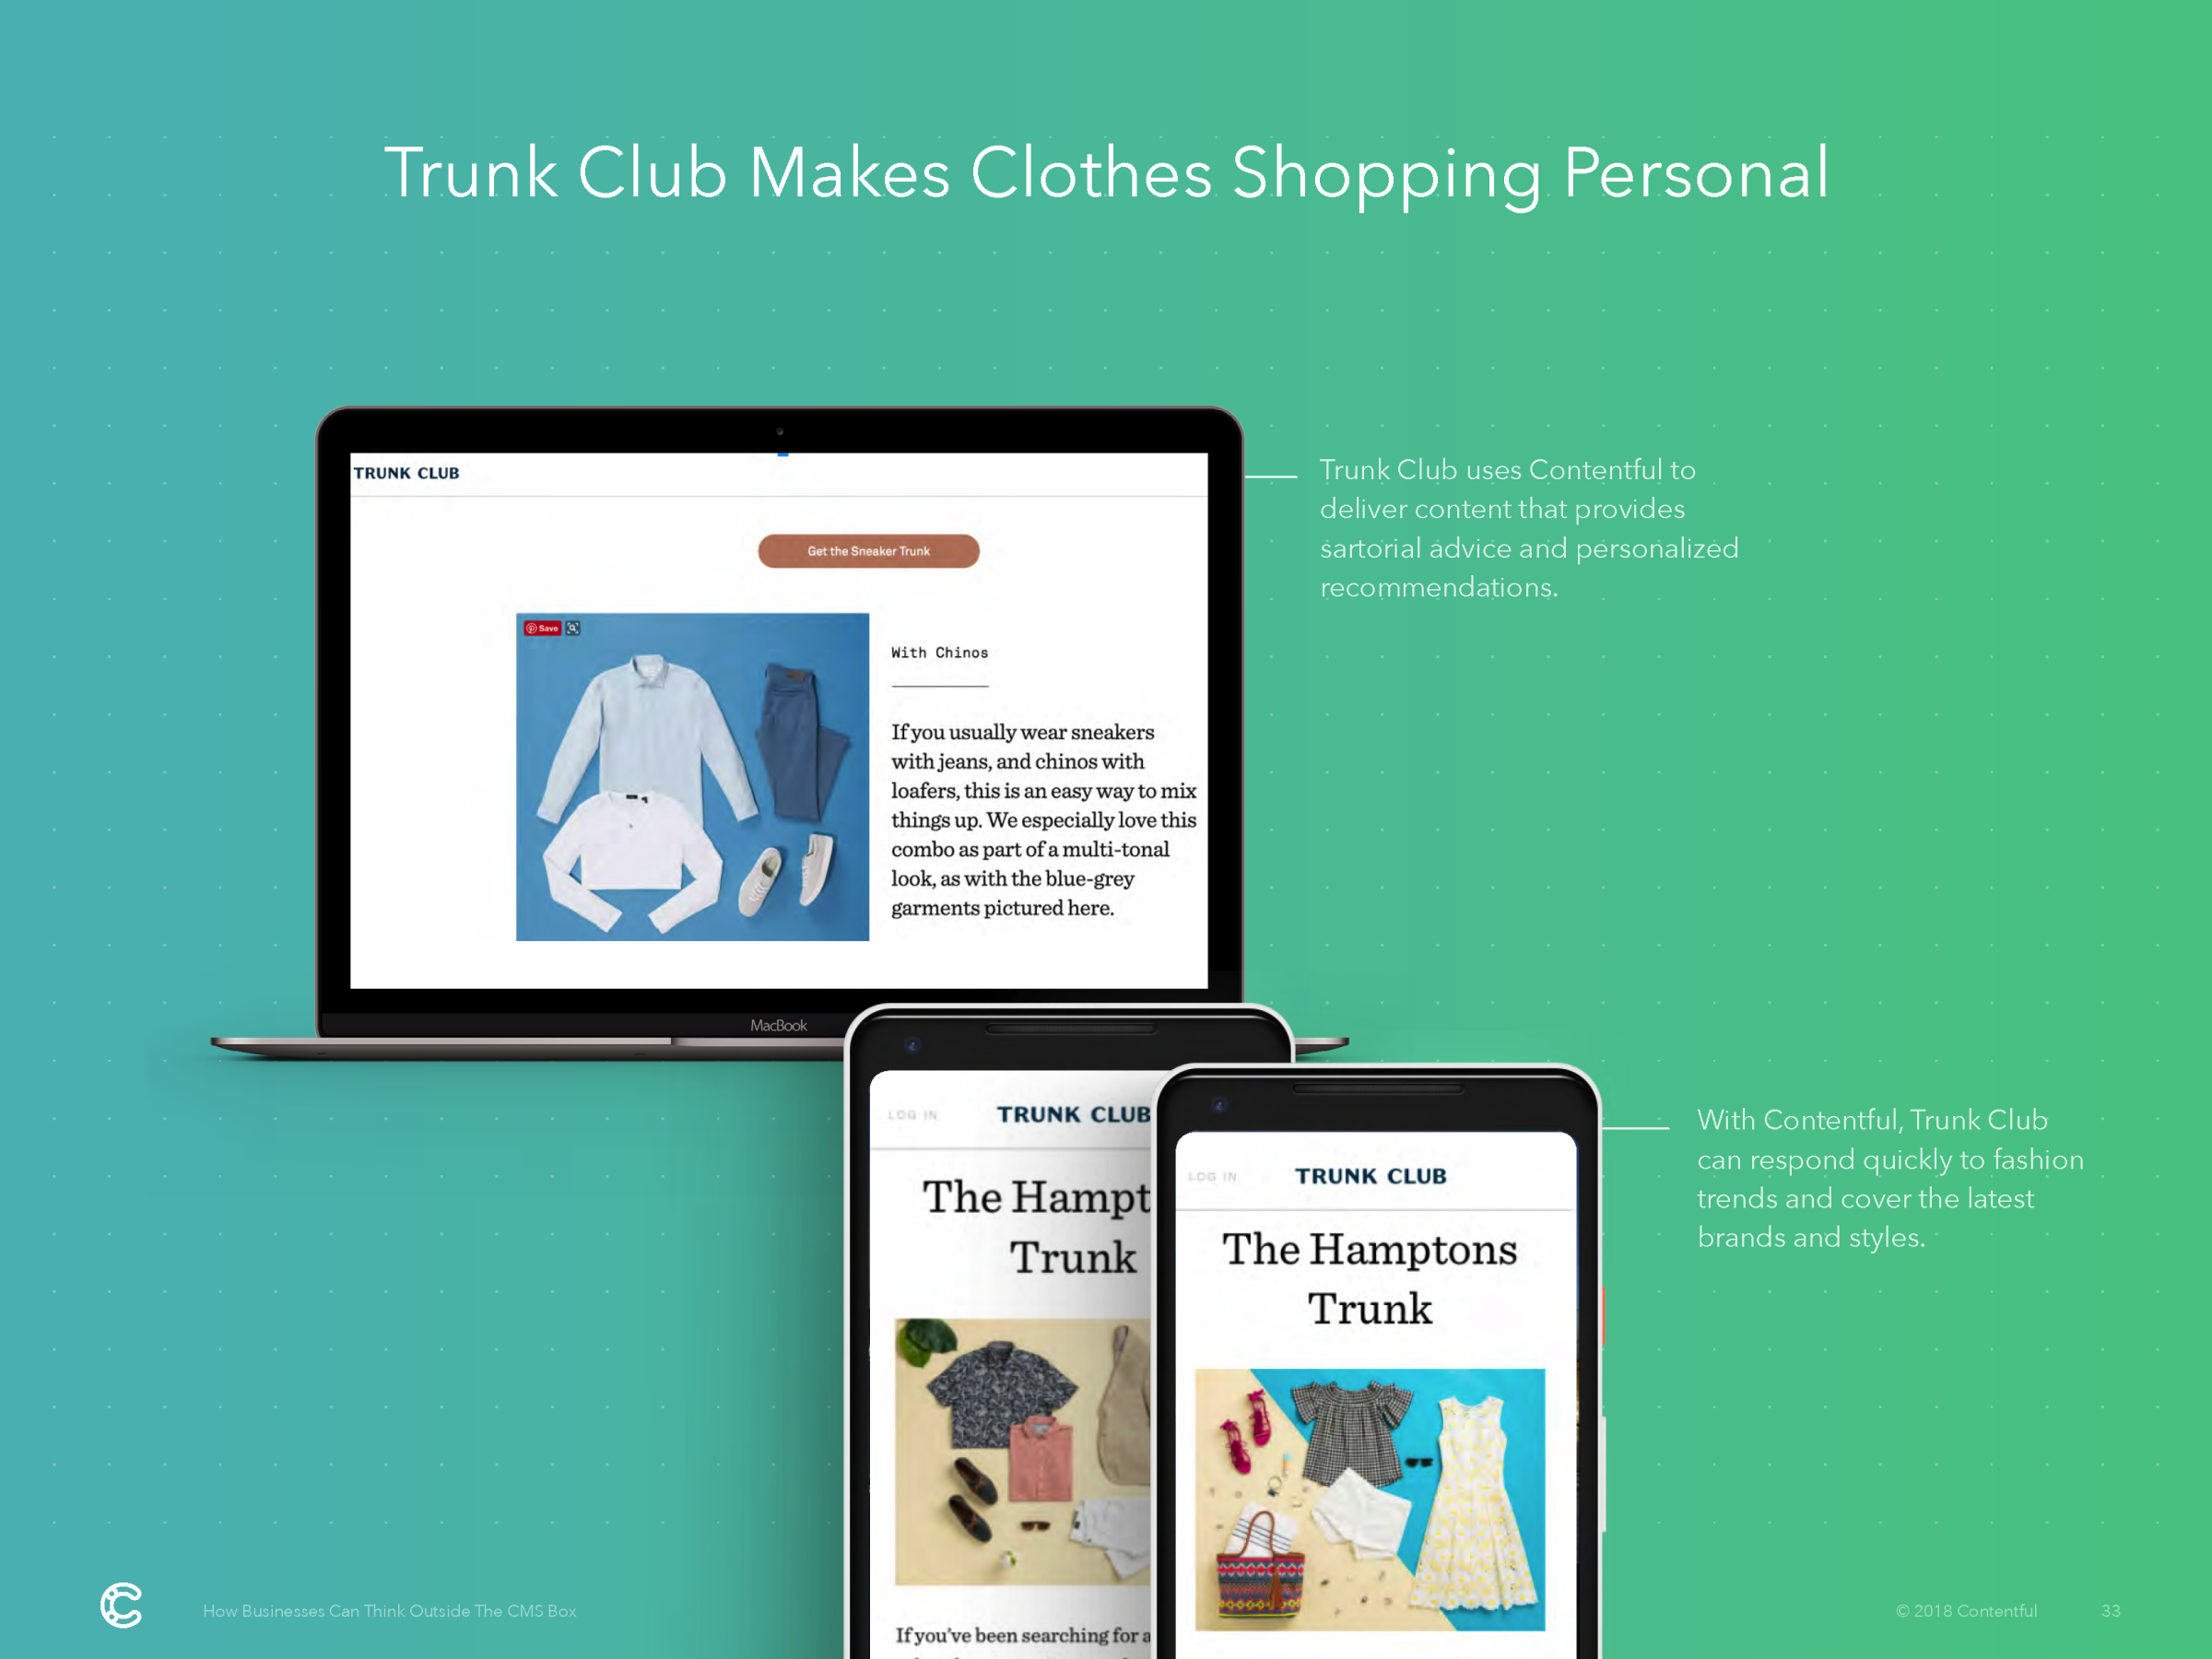 Contentful_CustomerStories_eBook_P1R2_Page_33-2400x1800.png